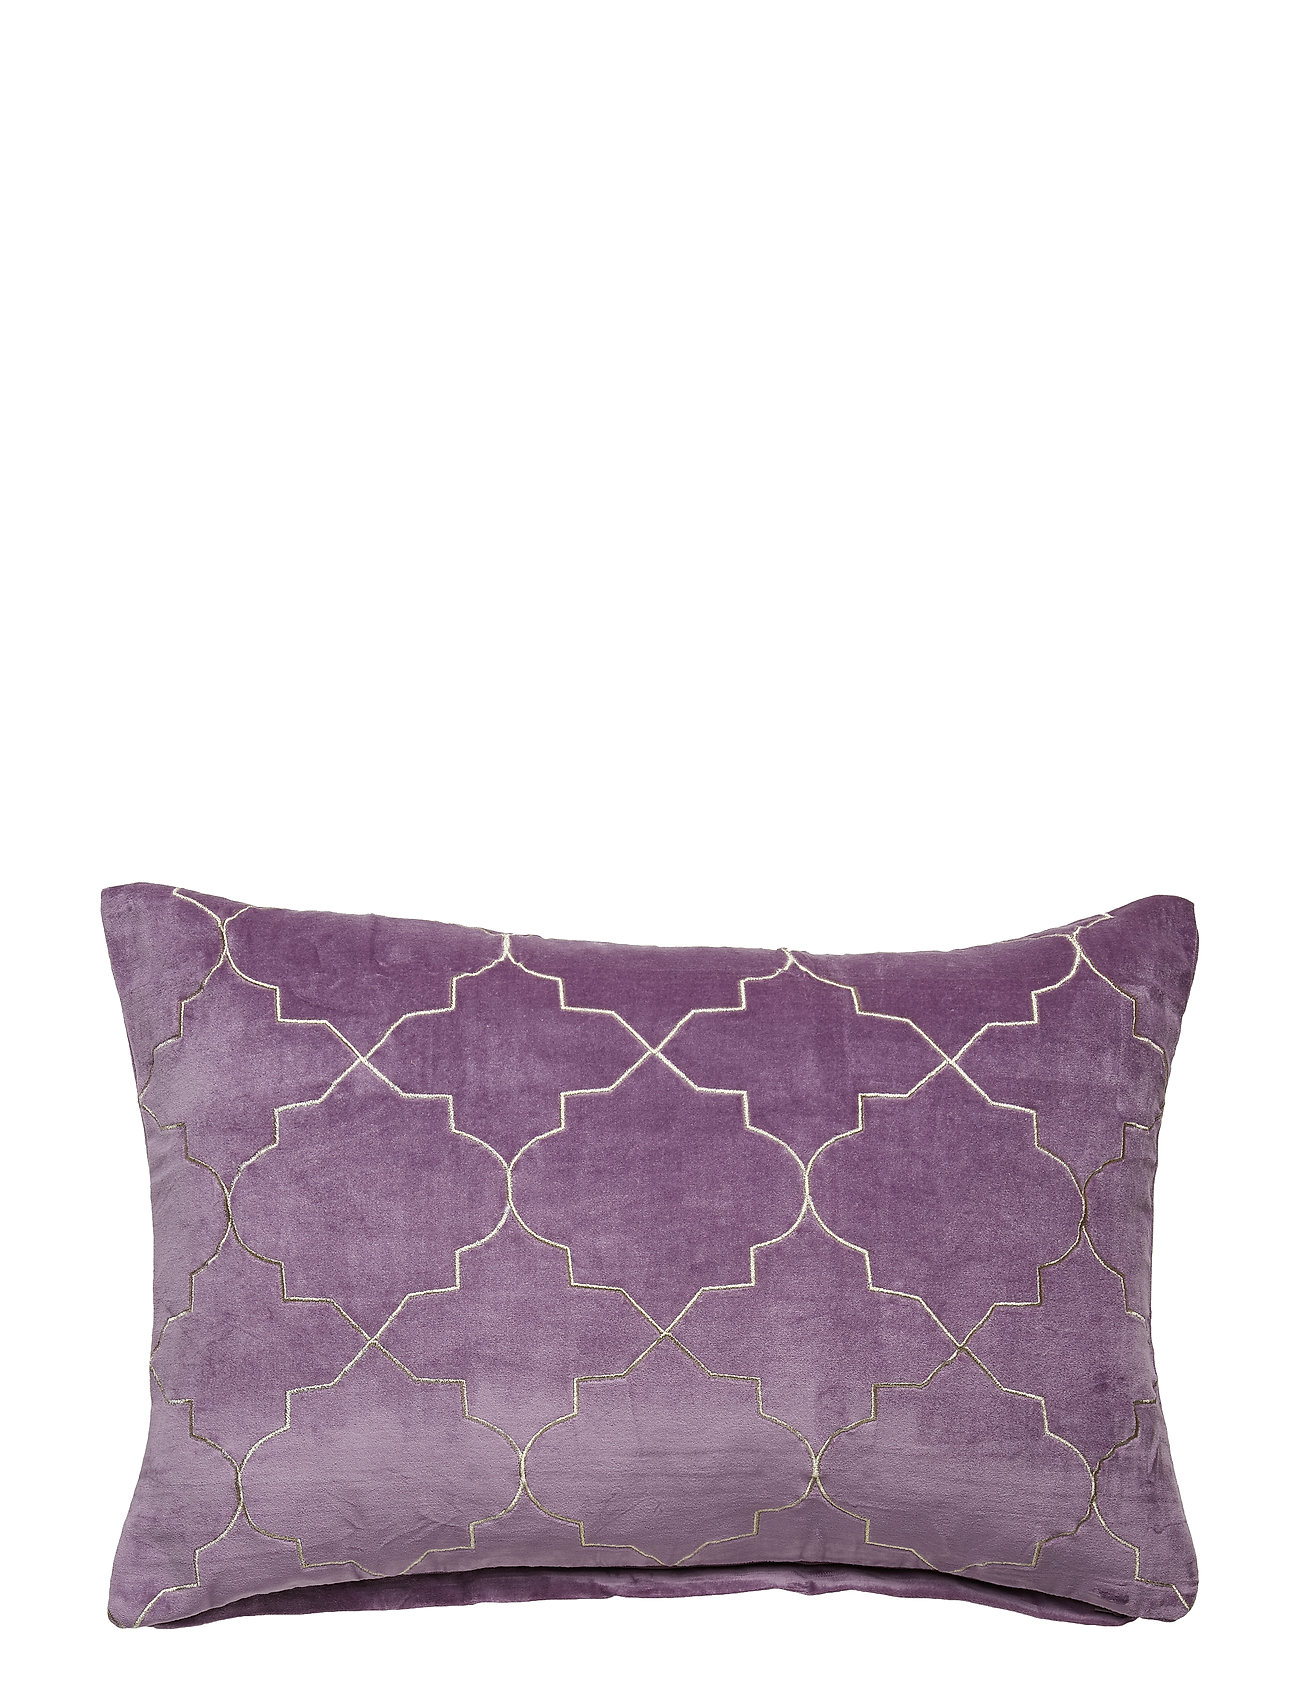 DAY Home Day Princess Velvet Cushion Cover - LILAC